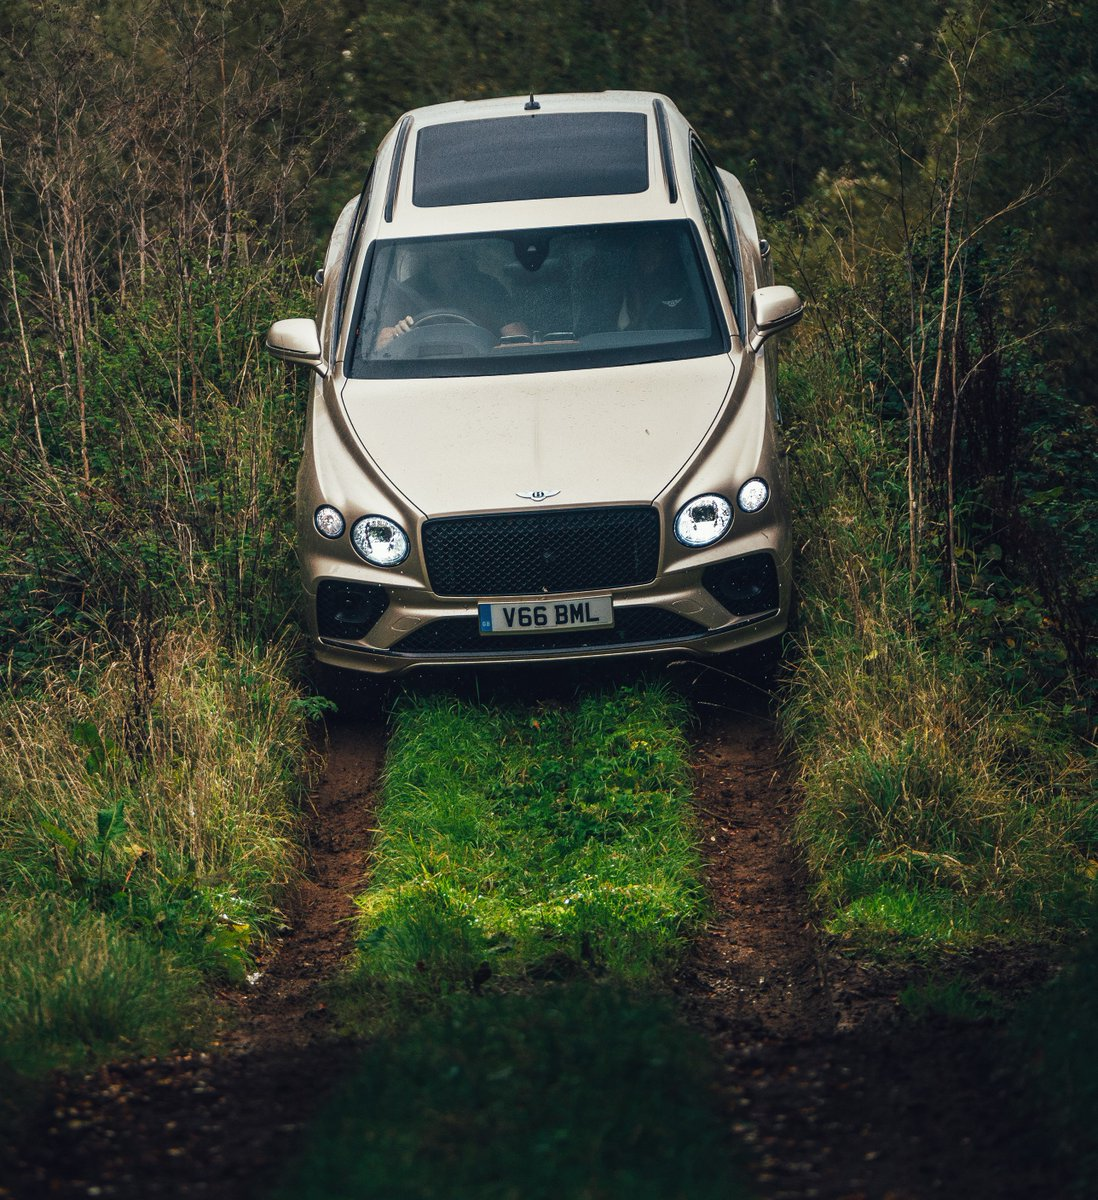 Officially official. The #NewBentayga has been recognised as 'Luxury SUV of the Year' by @4x4_mag in their annual awards sponsored by @BFGoodrichTires. Discover more: